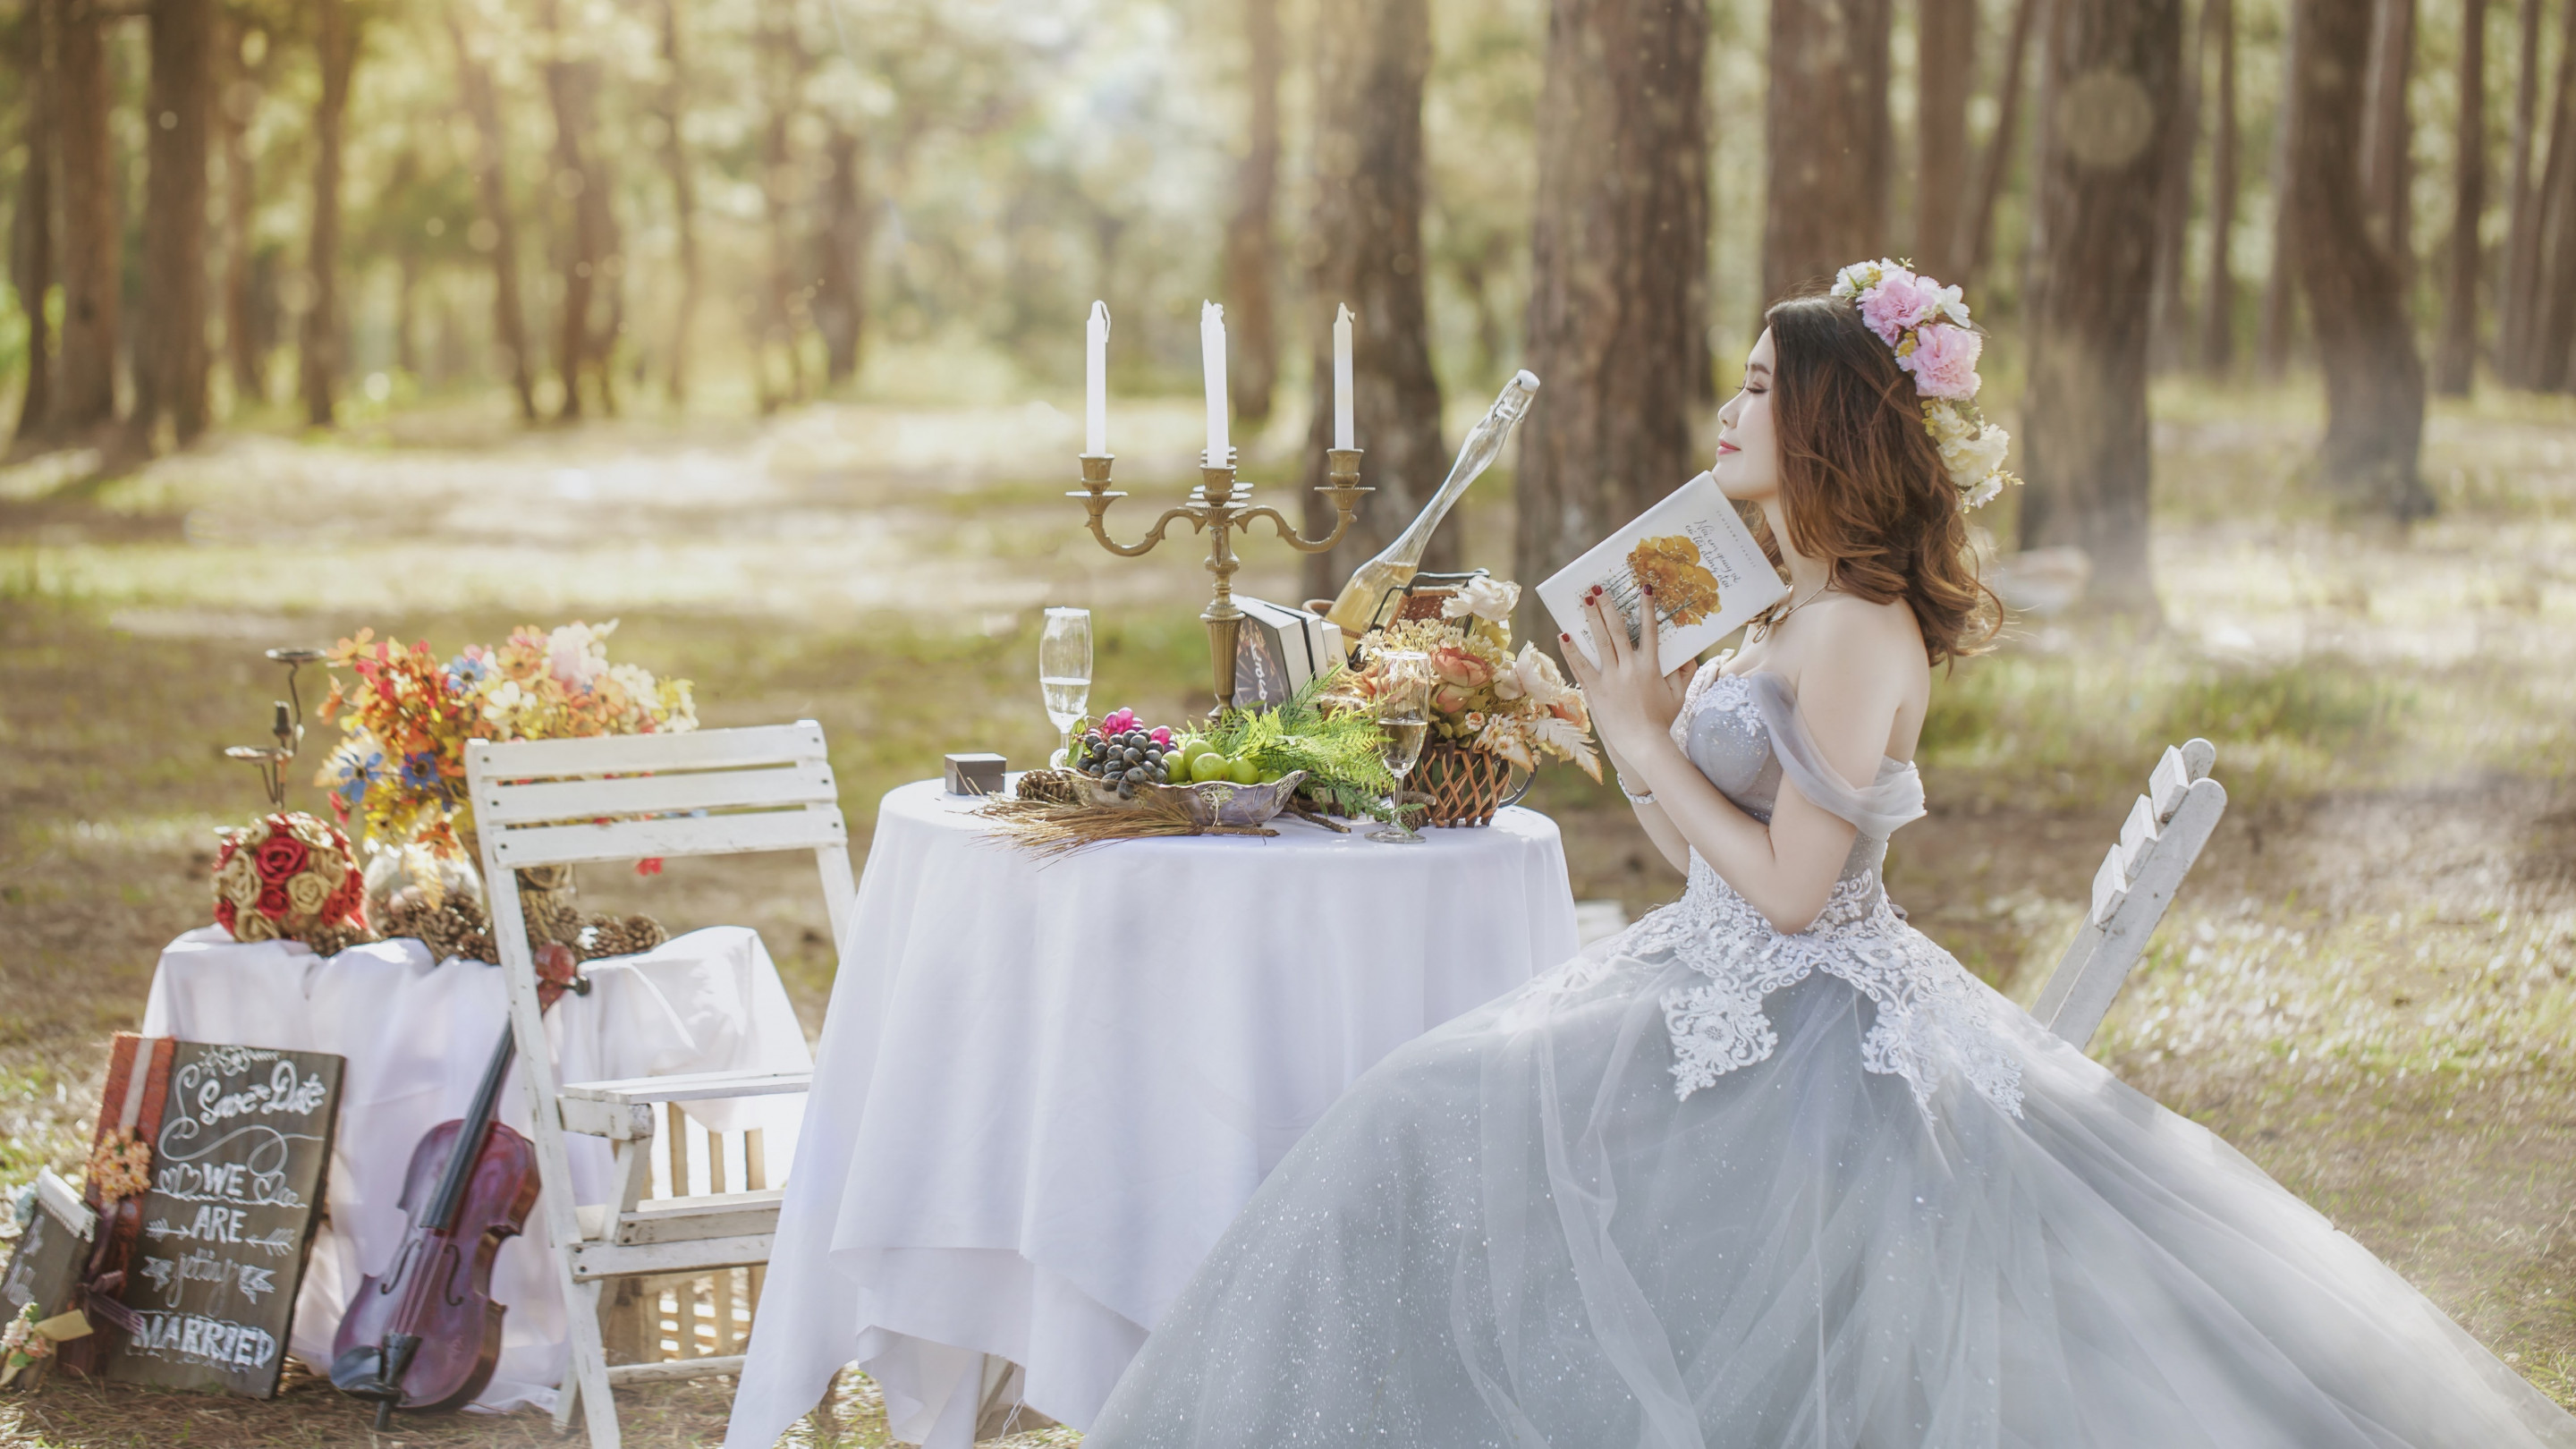 Bride in wedding outdoor scenery | 2880x1620 wallpaper